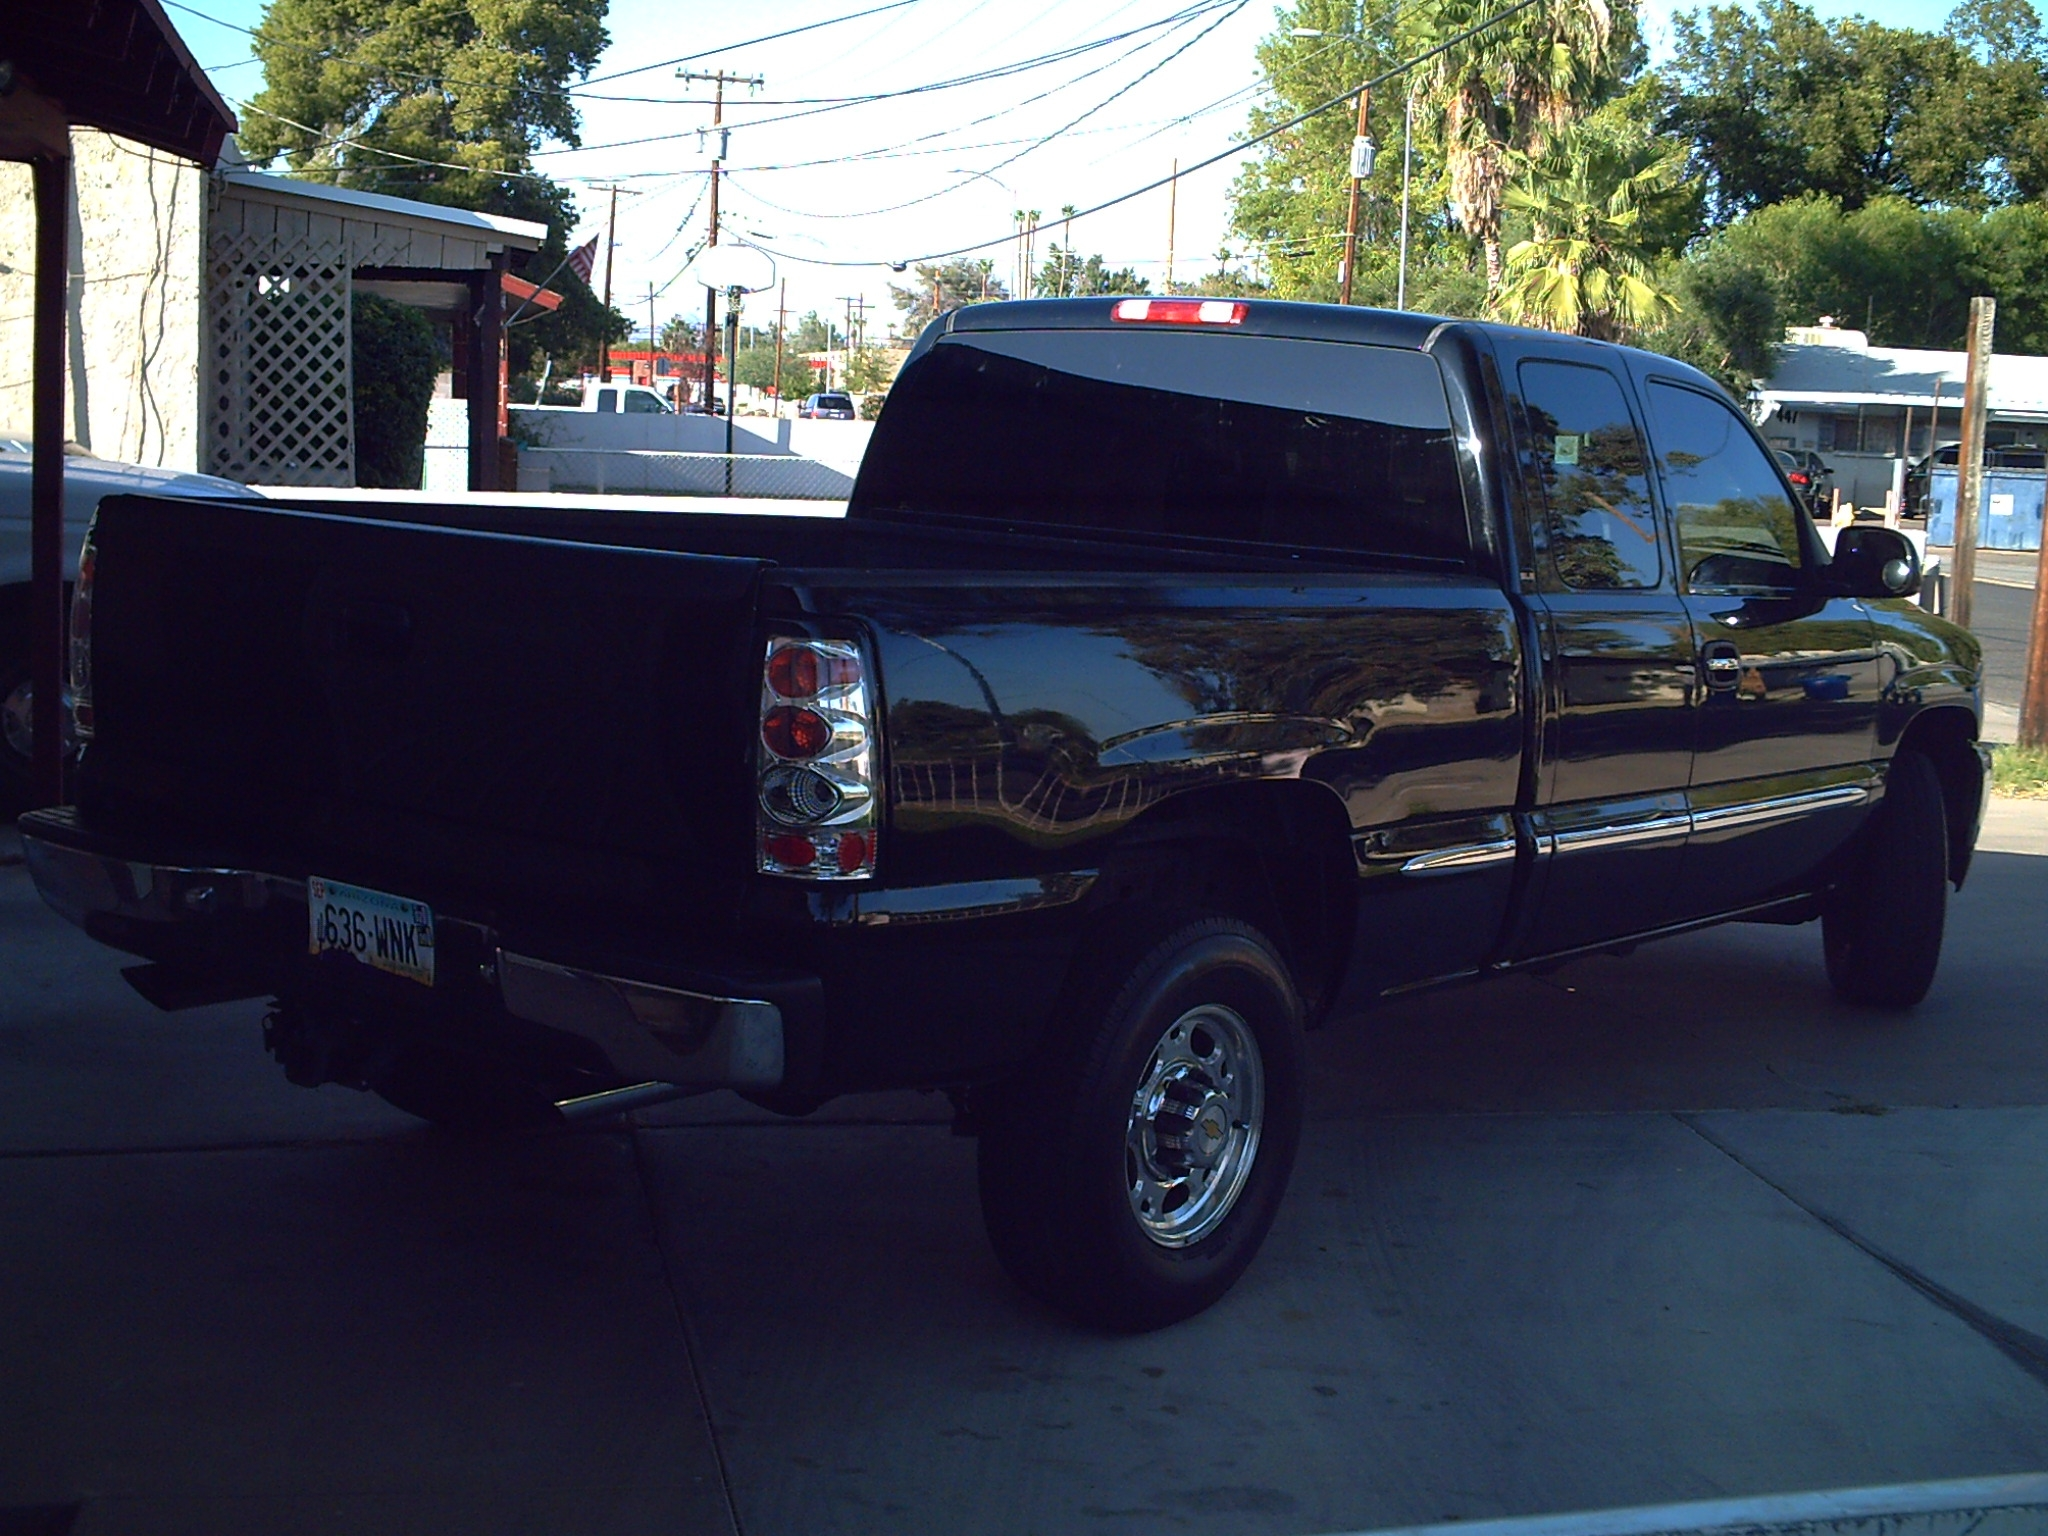 Undercover2500 2000 GMC 2500 HD Extended Cab 15180503